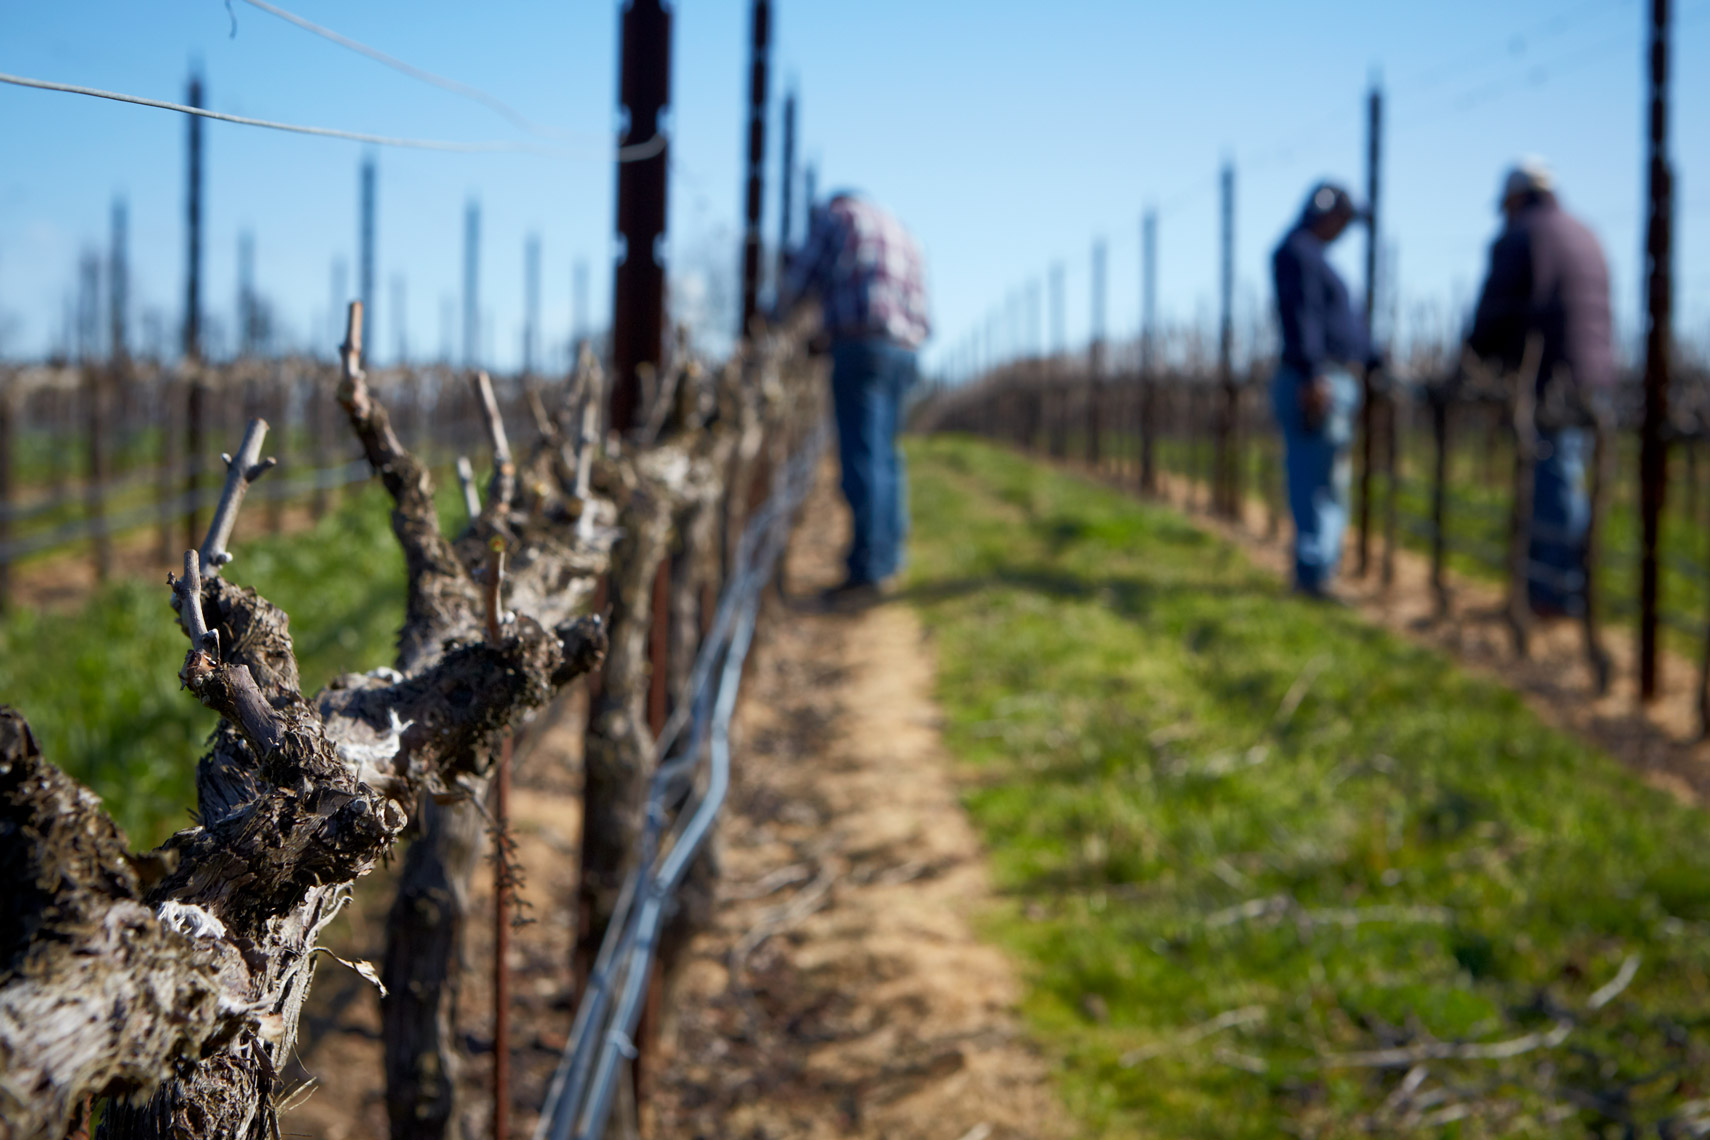 AlanCampbellPhotography, pruning the vineyards